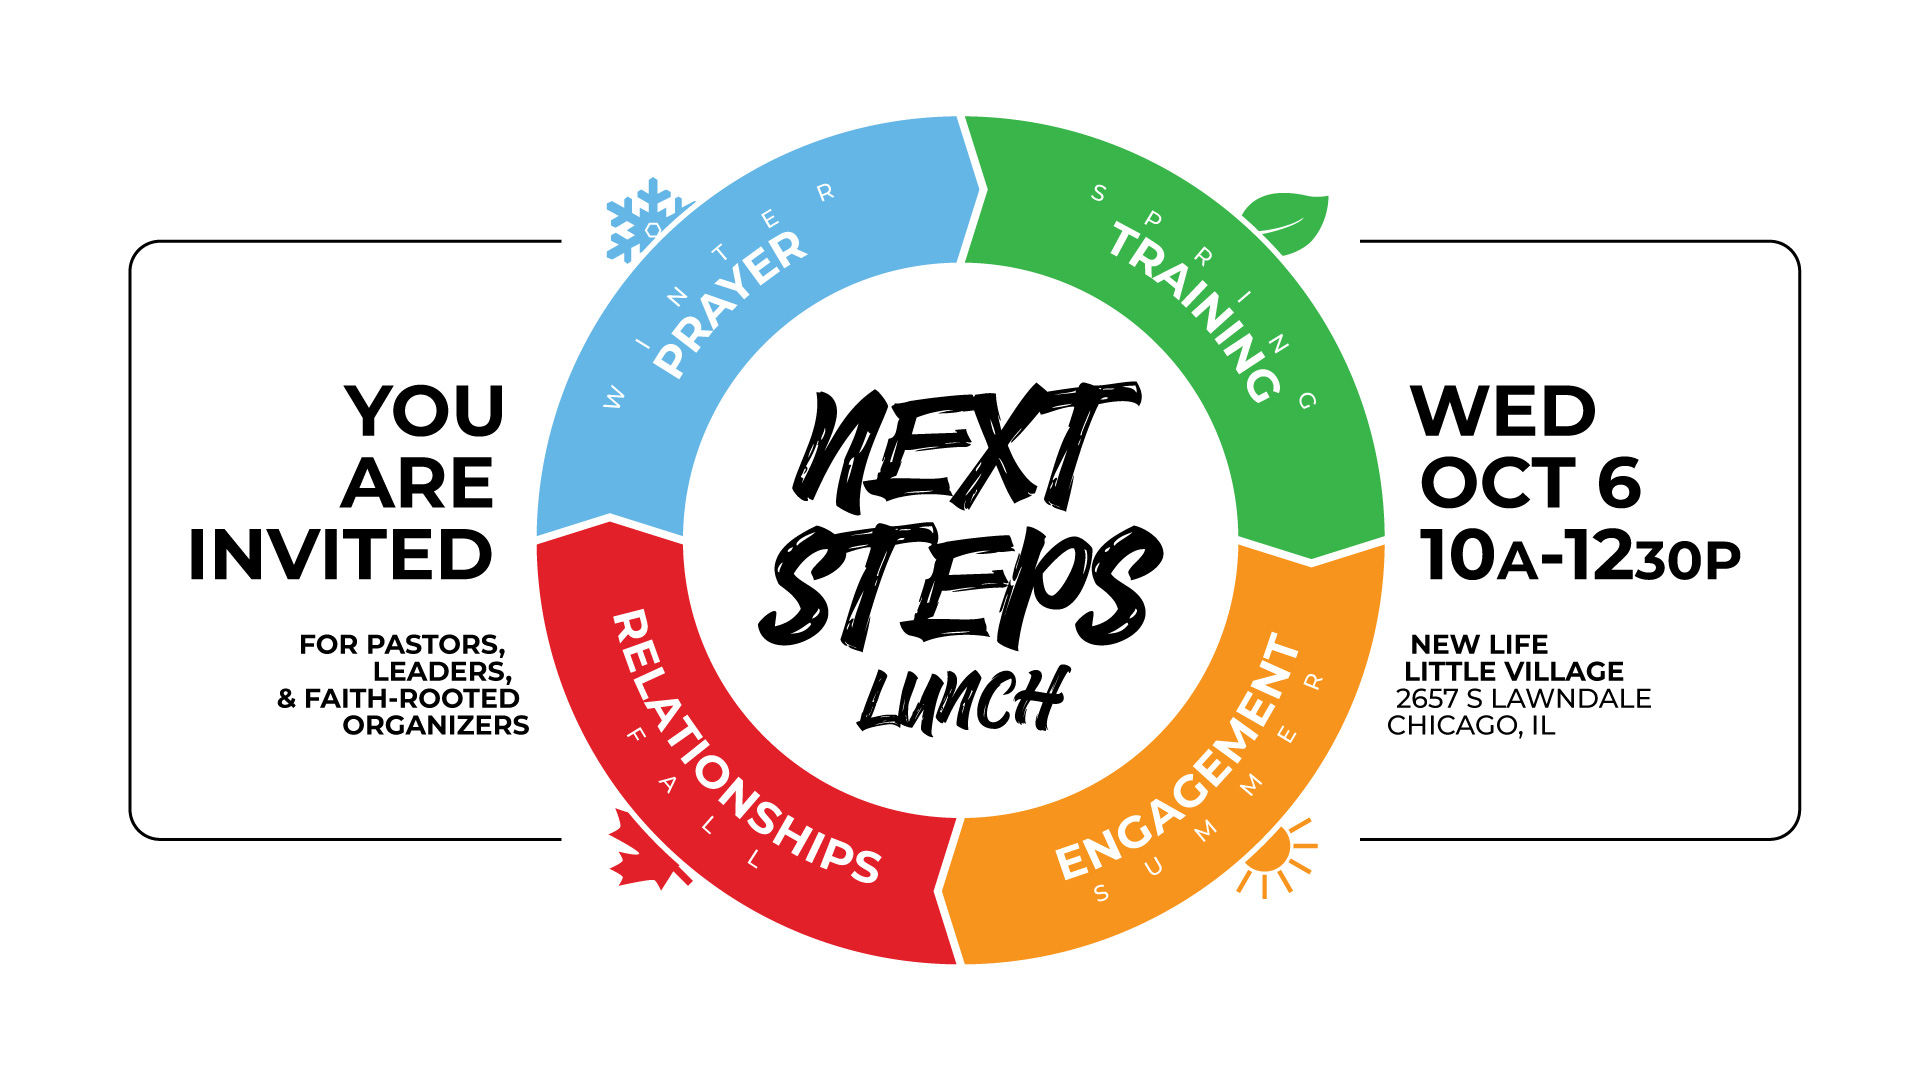 Next Steps Lunch 2021